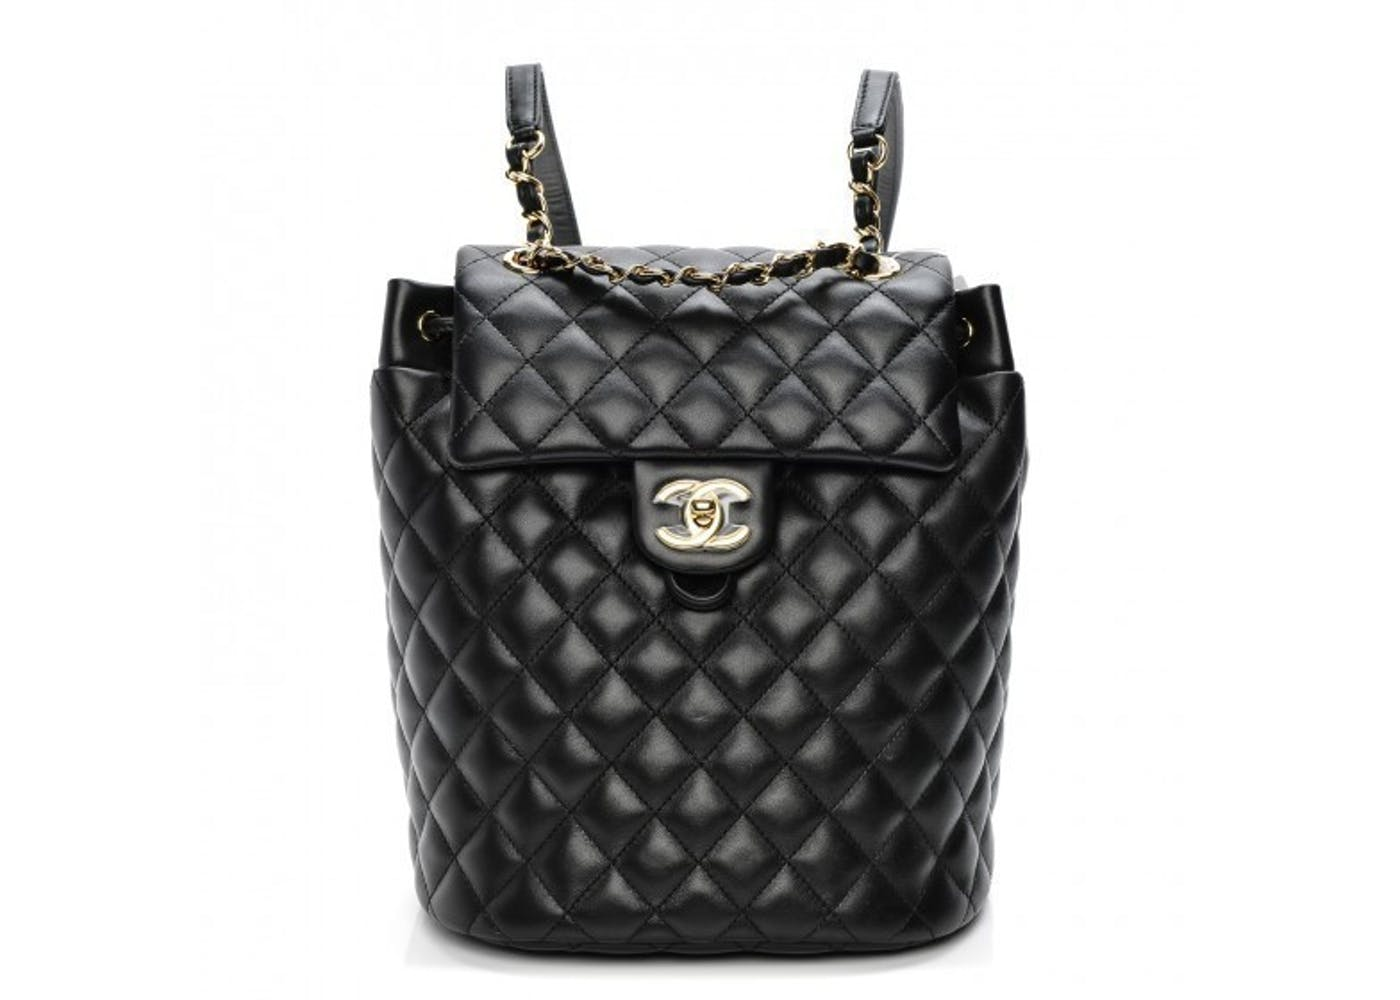 Urban Spirit Backpack Diamond Quilted Small Black : chanel quilted small bag - Adamdwight.com